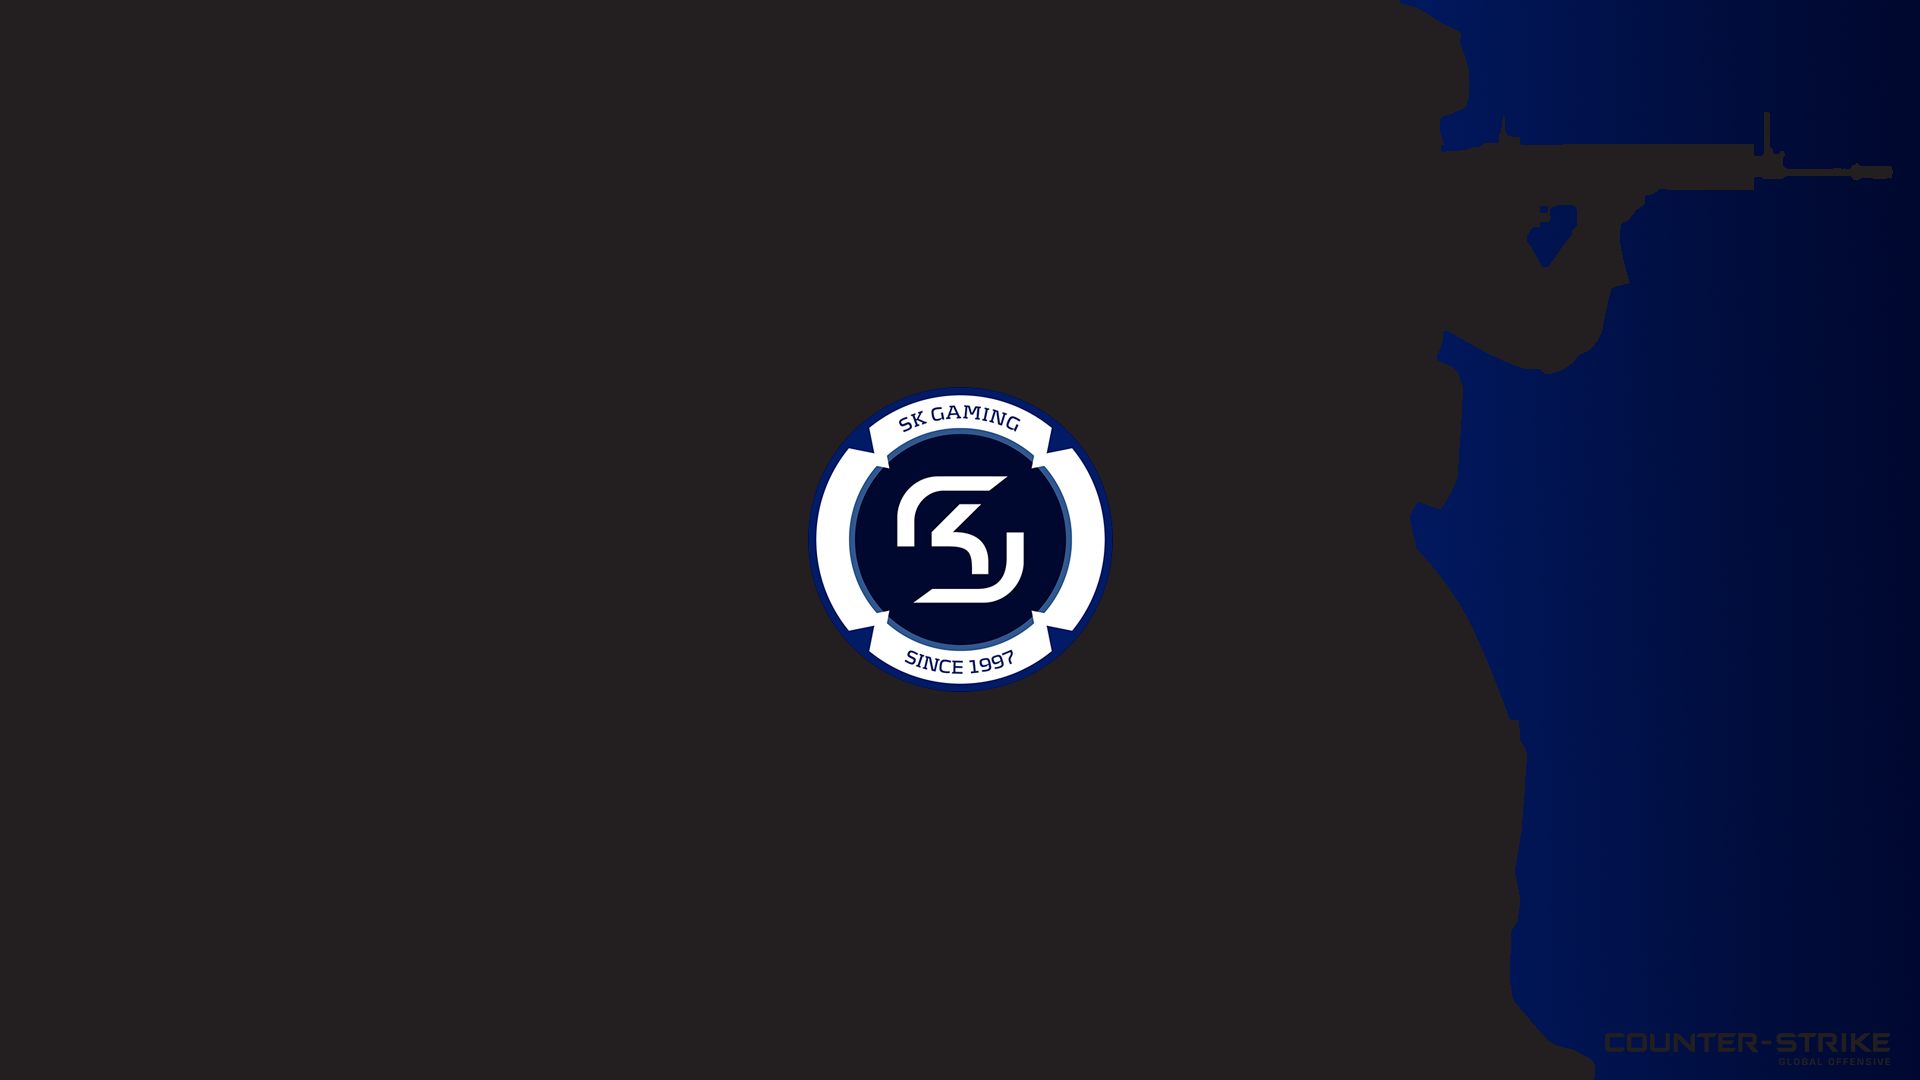 sk gaming | cs:go wallpapers and backgrounds